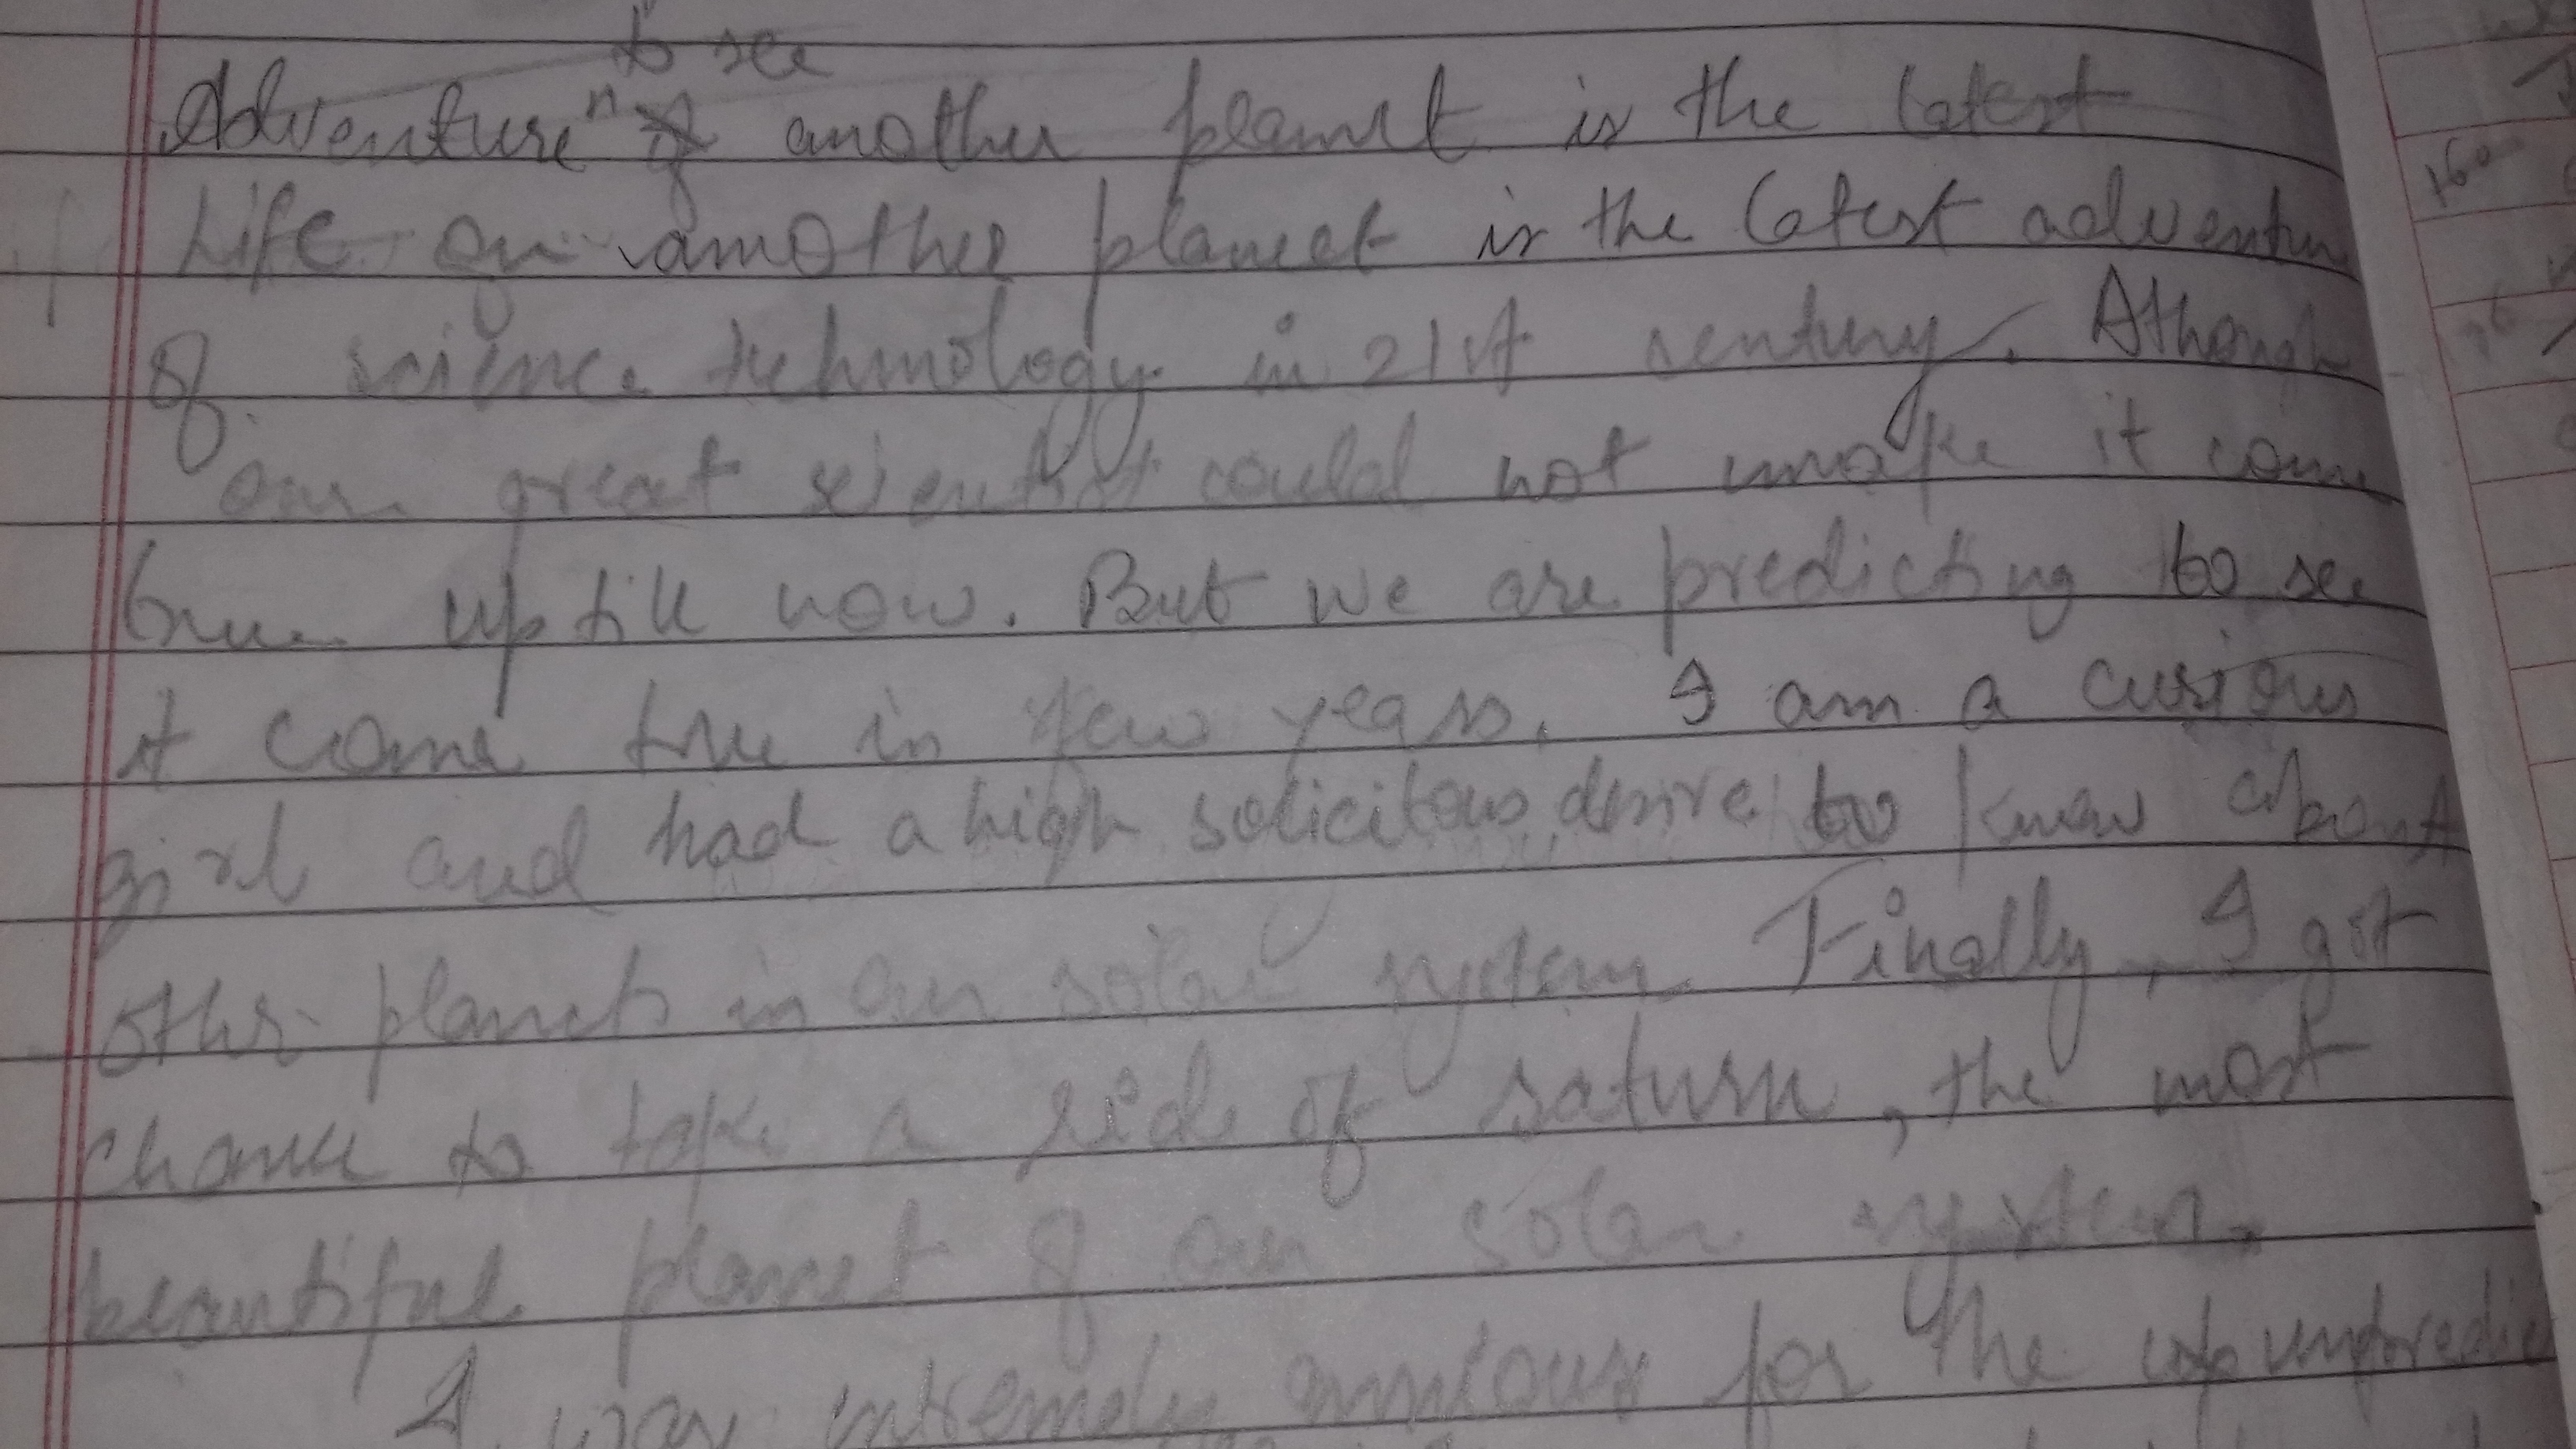 imaginative essay on if i were an astronaut on mars brainly in  jpg